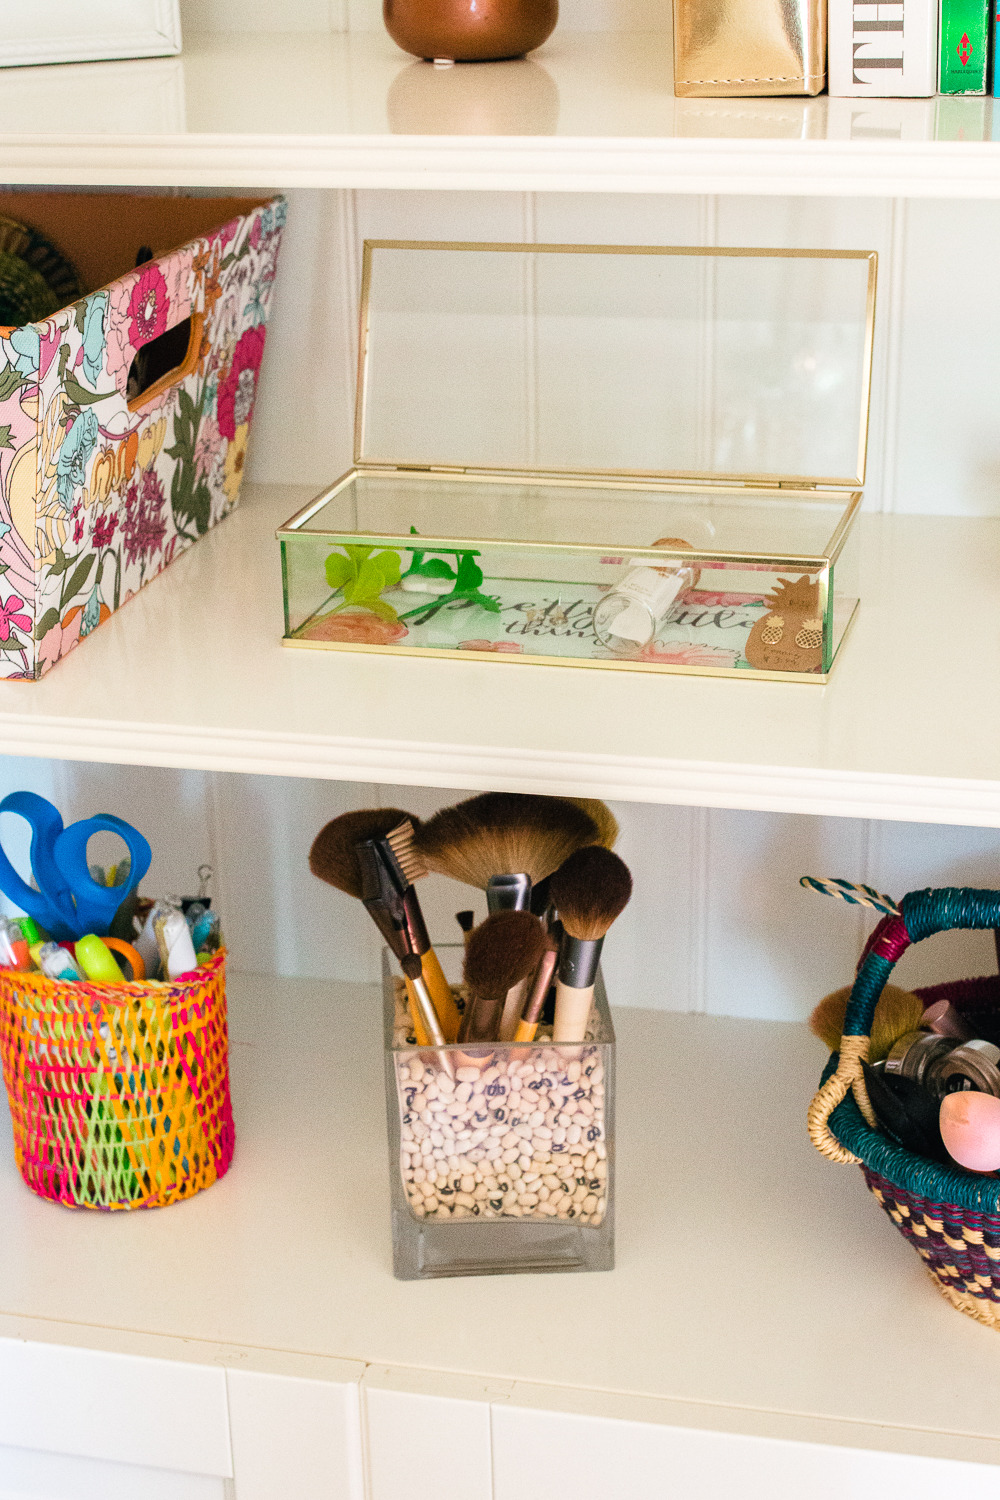 How to Organize Jewelry, Accessorizes and Makeup in a Small Space